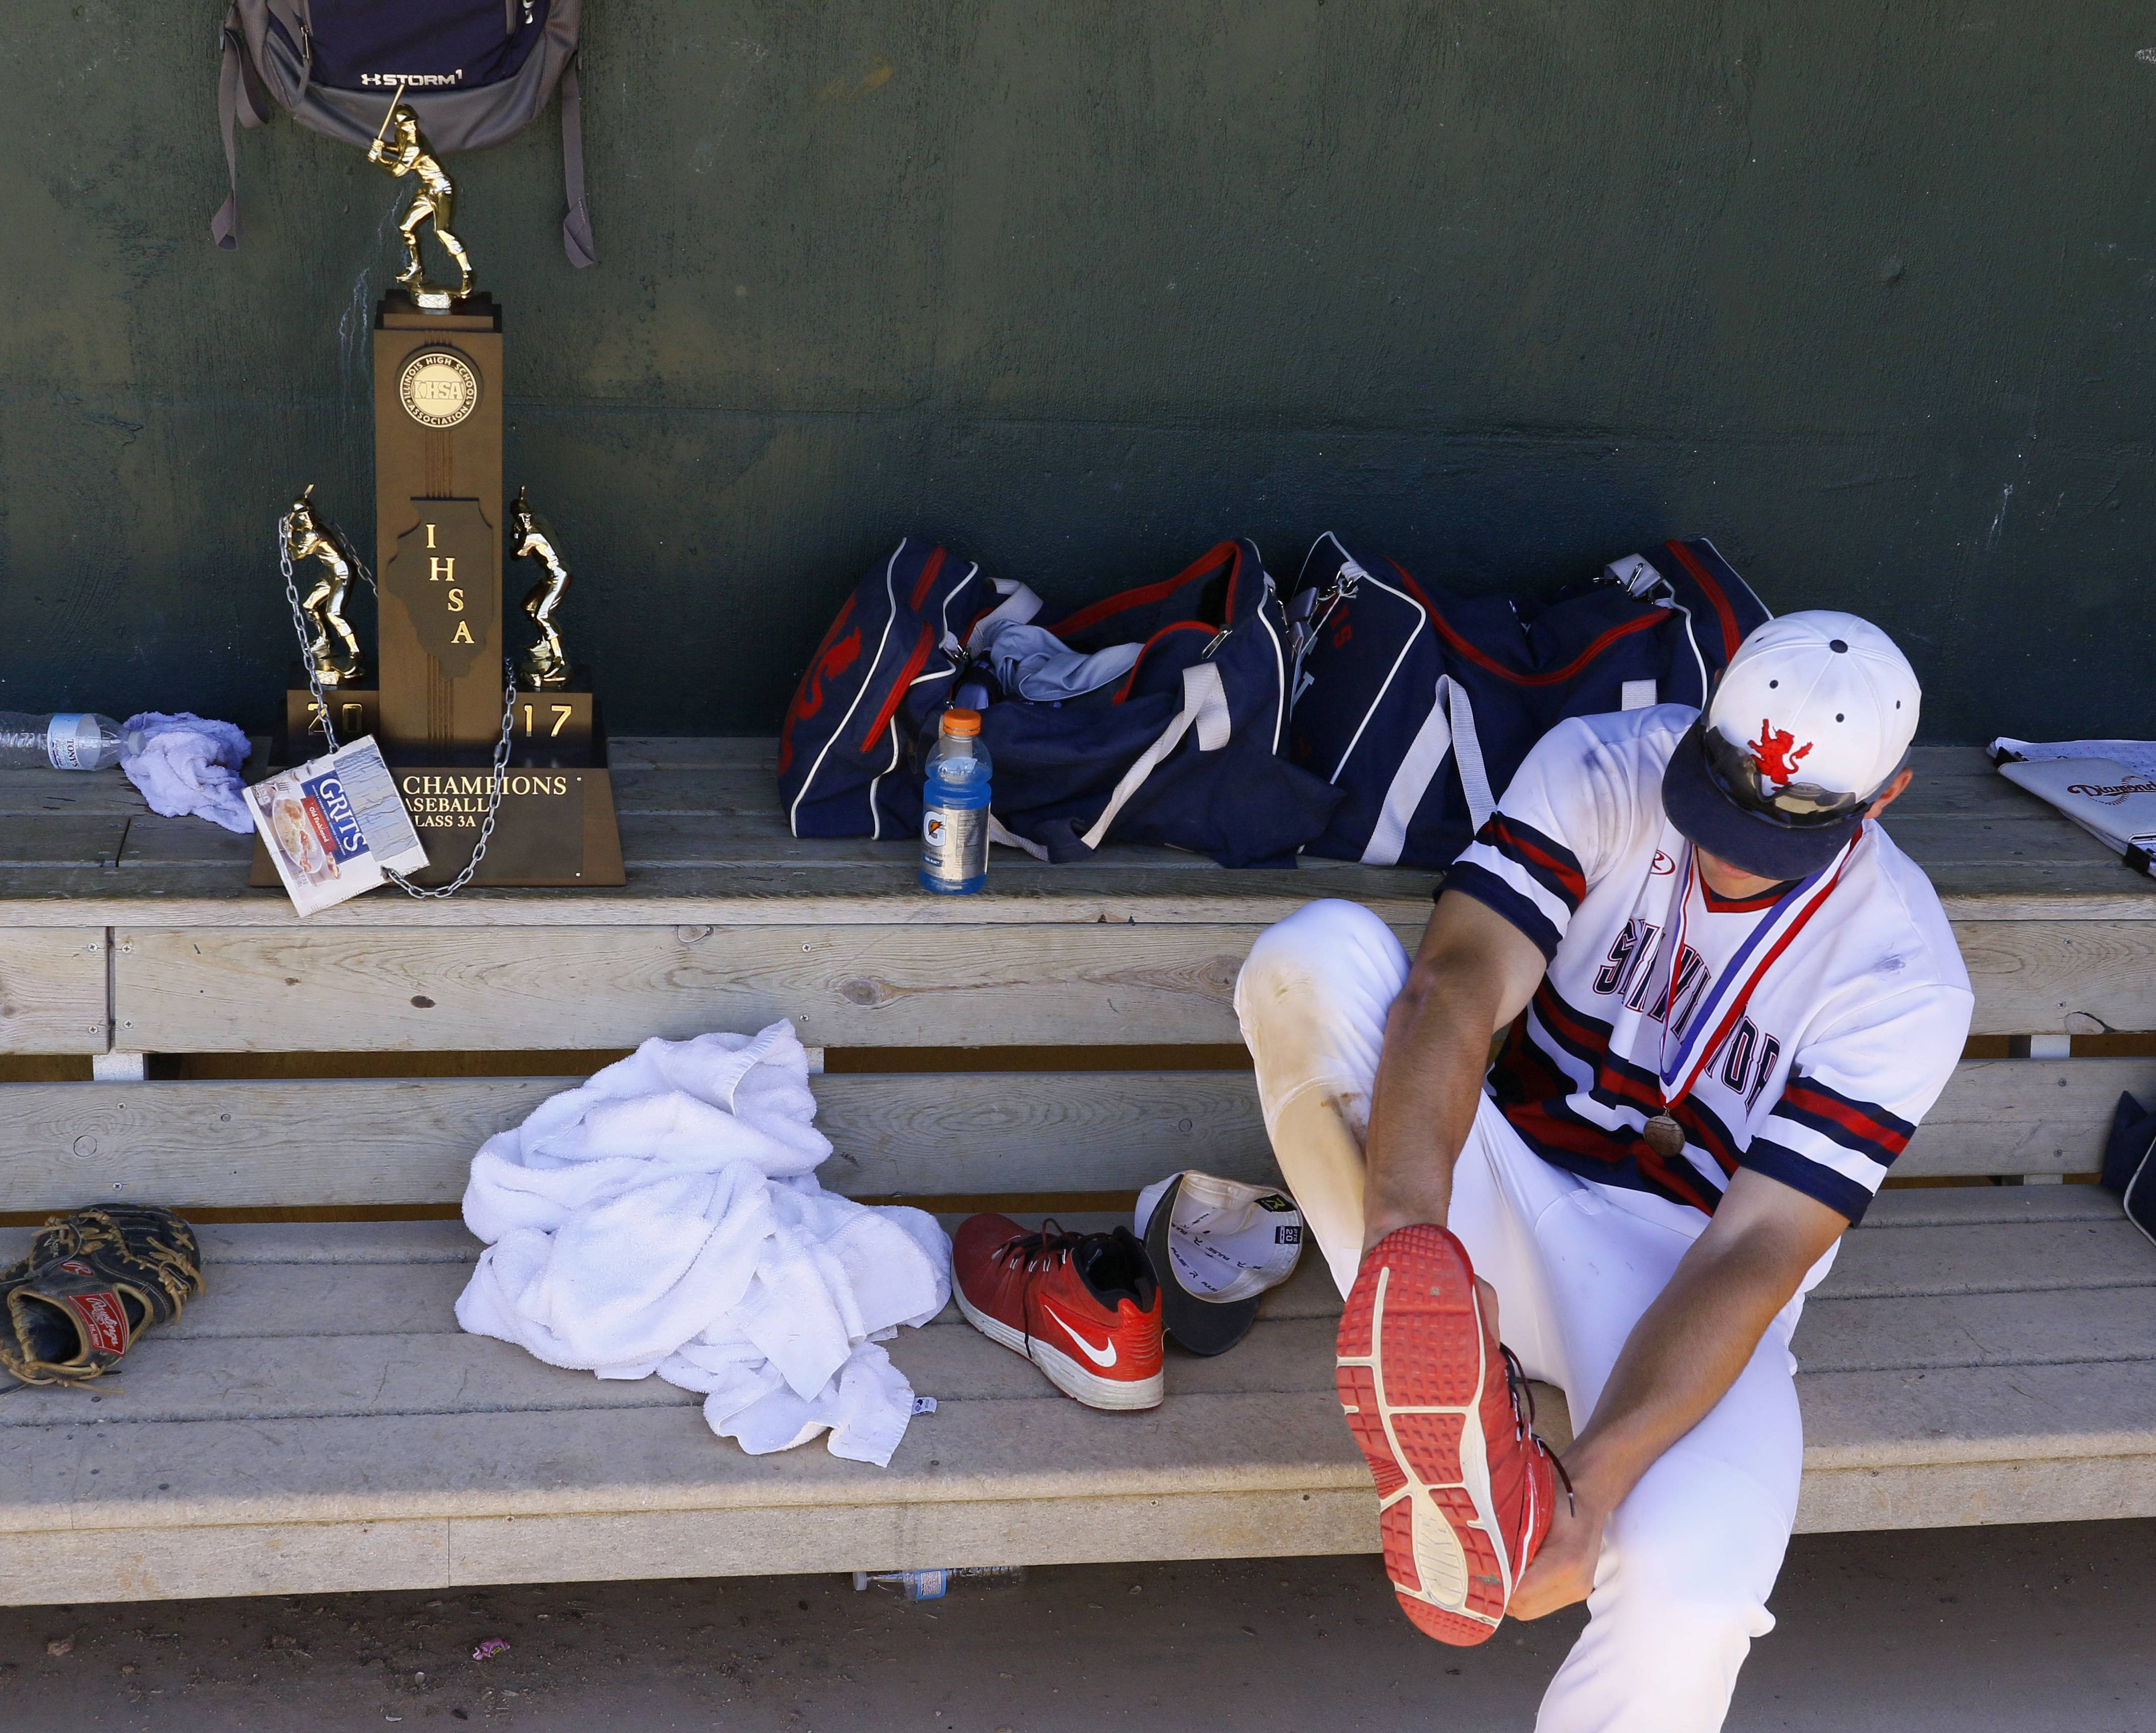 St. Viator's Cole Kmet changes his shoes next to the Class 3A baseball state championship trophy on Saturday in Joliet.